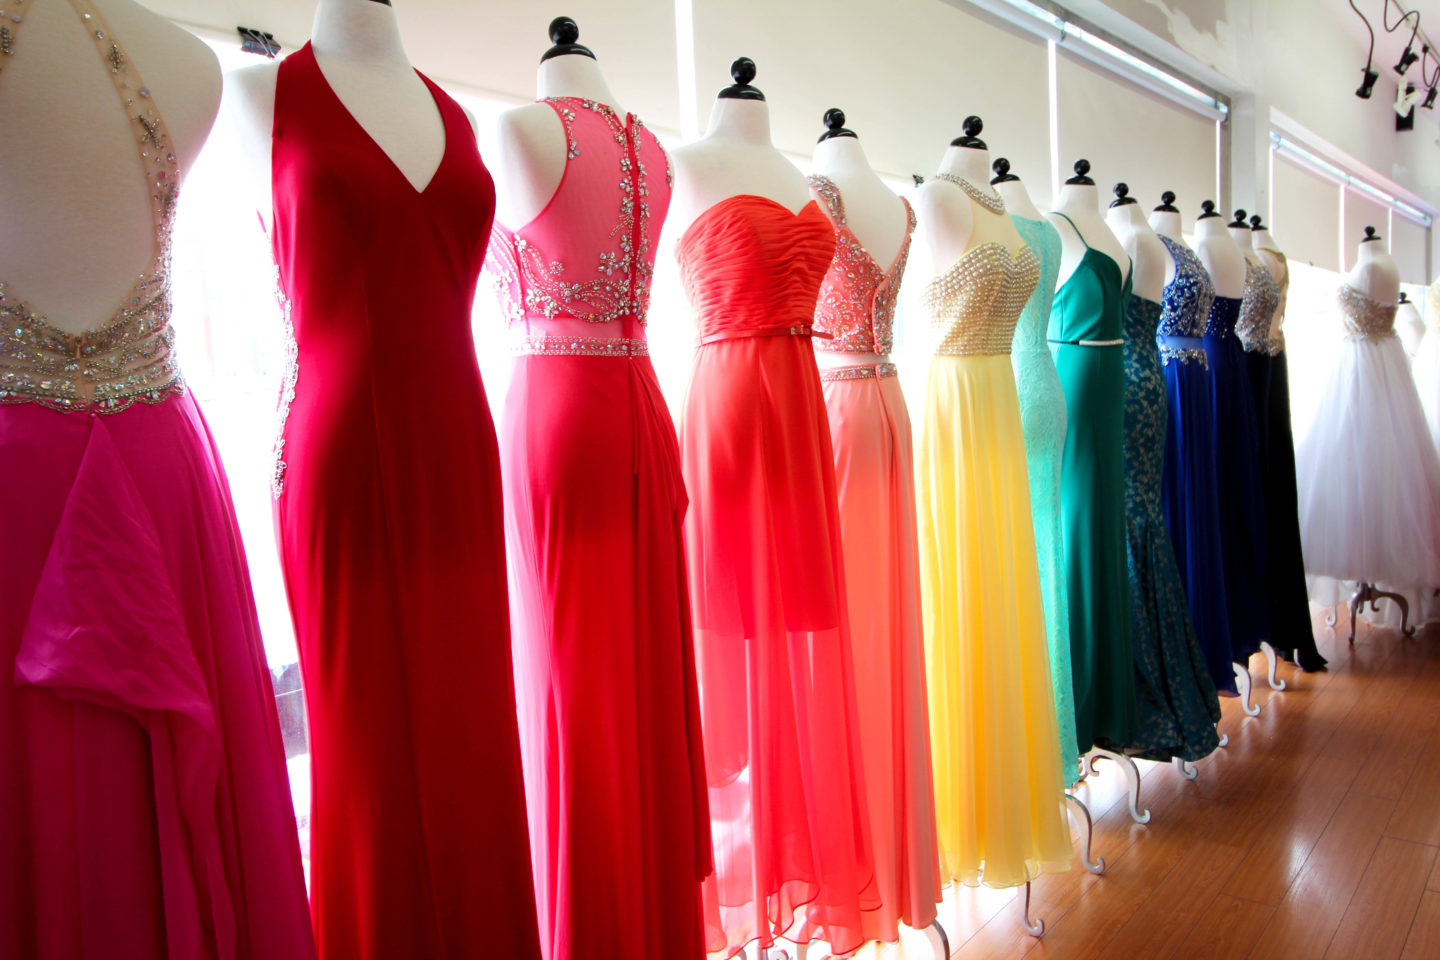 27968c1ea0d4 ... Bridesmaid Dress Shopping - Chelsea de Castro ...